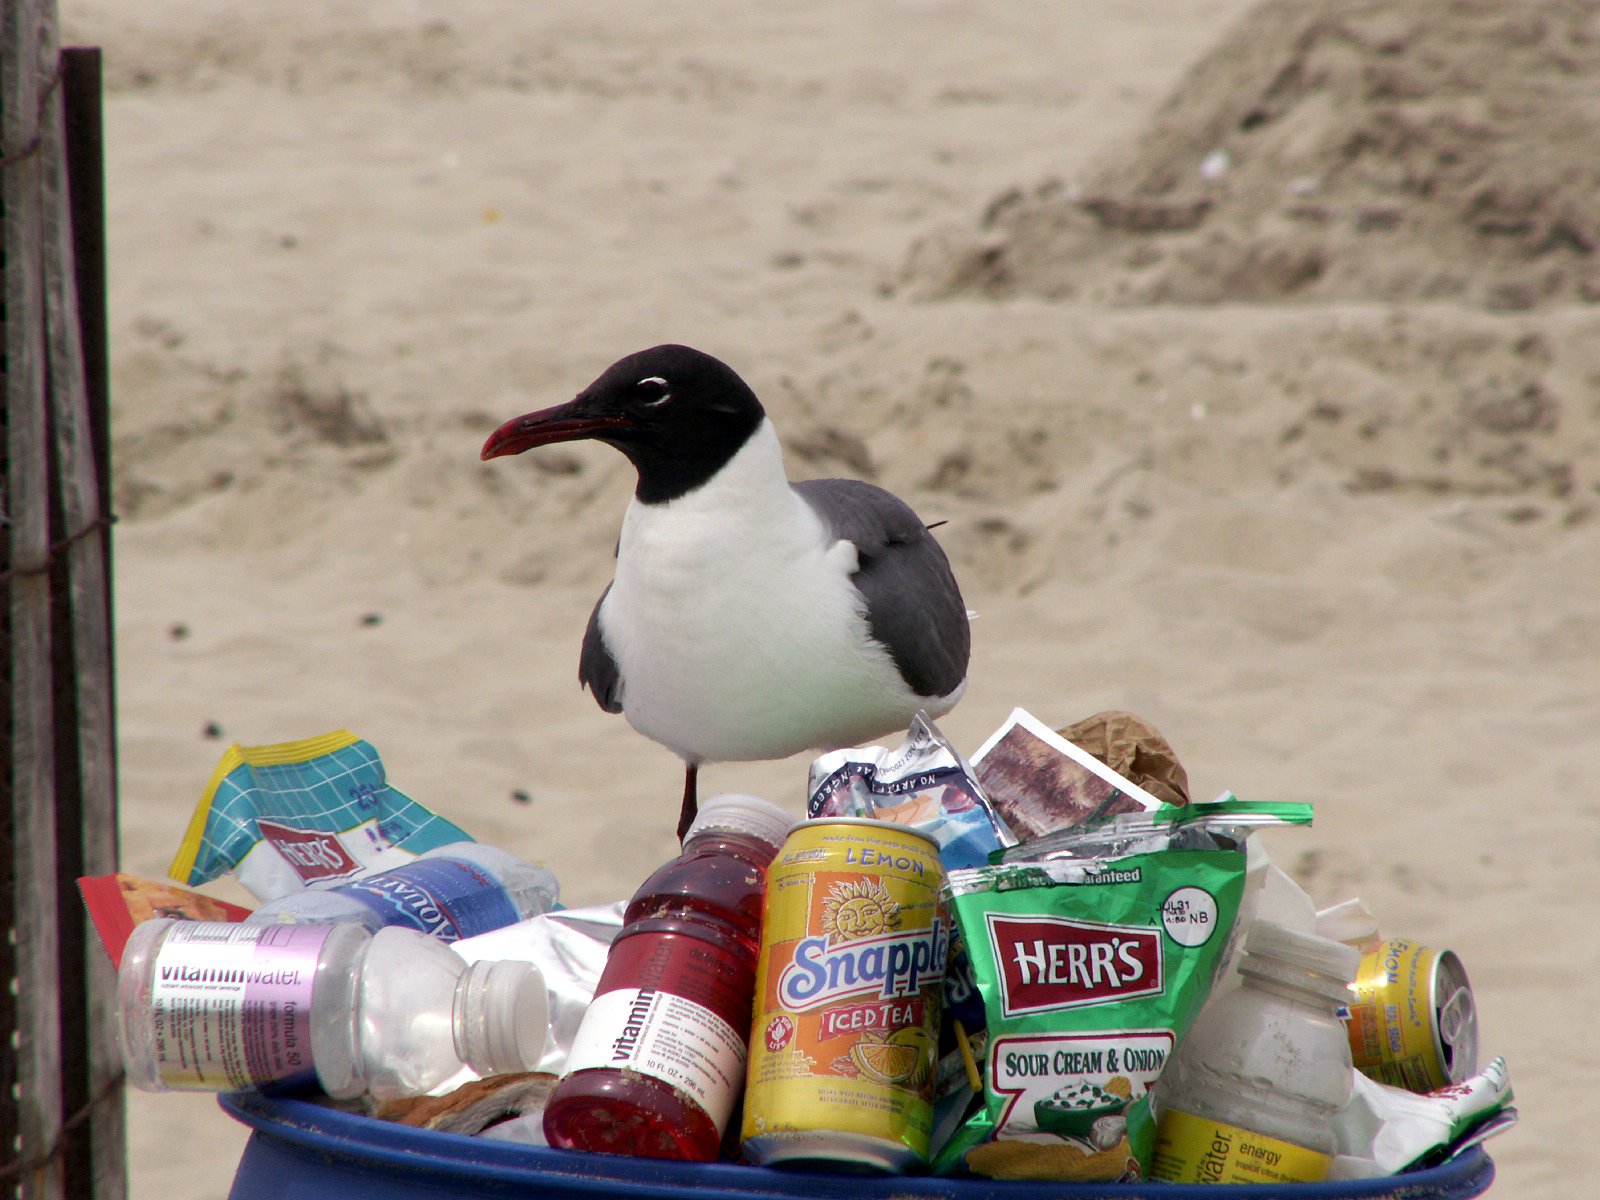 Seagulls targeting a trash can on a New Jersey beach. (Photo: Jackie/Flickr)